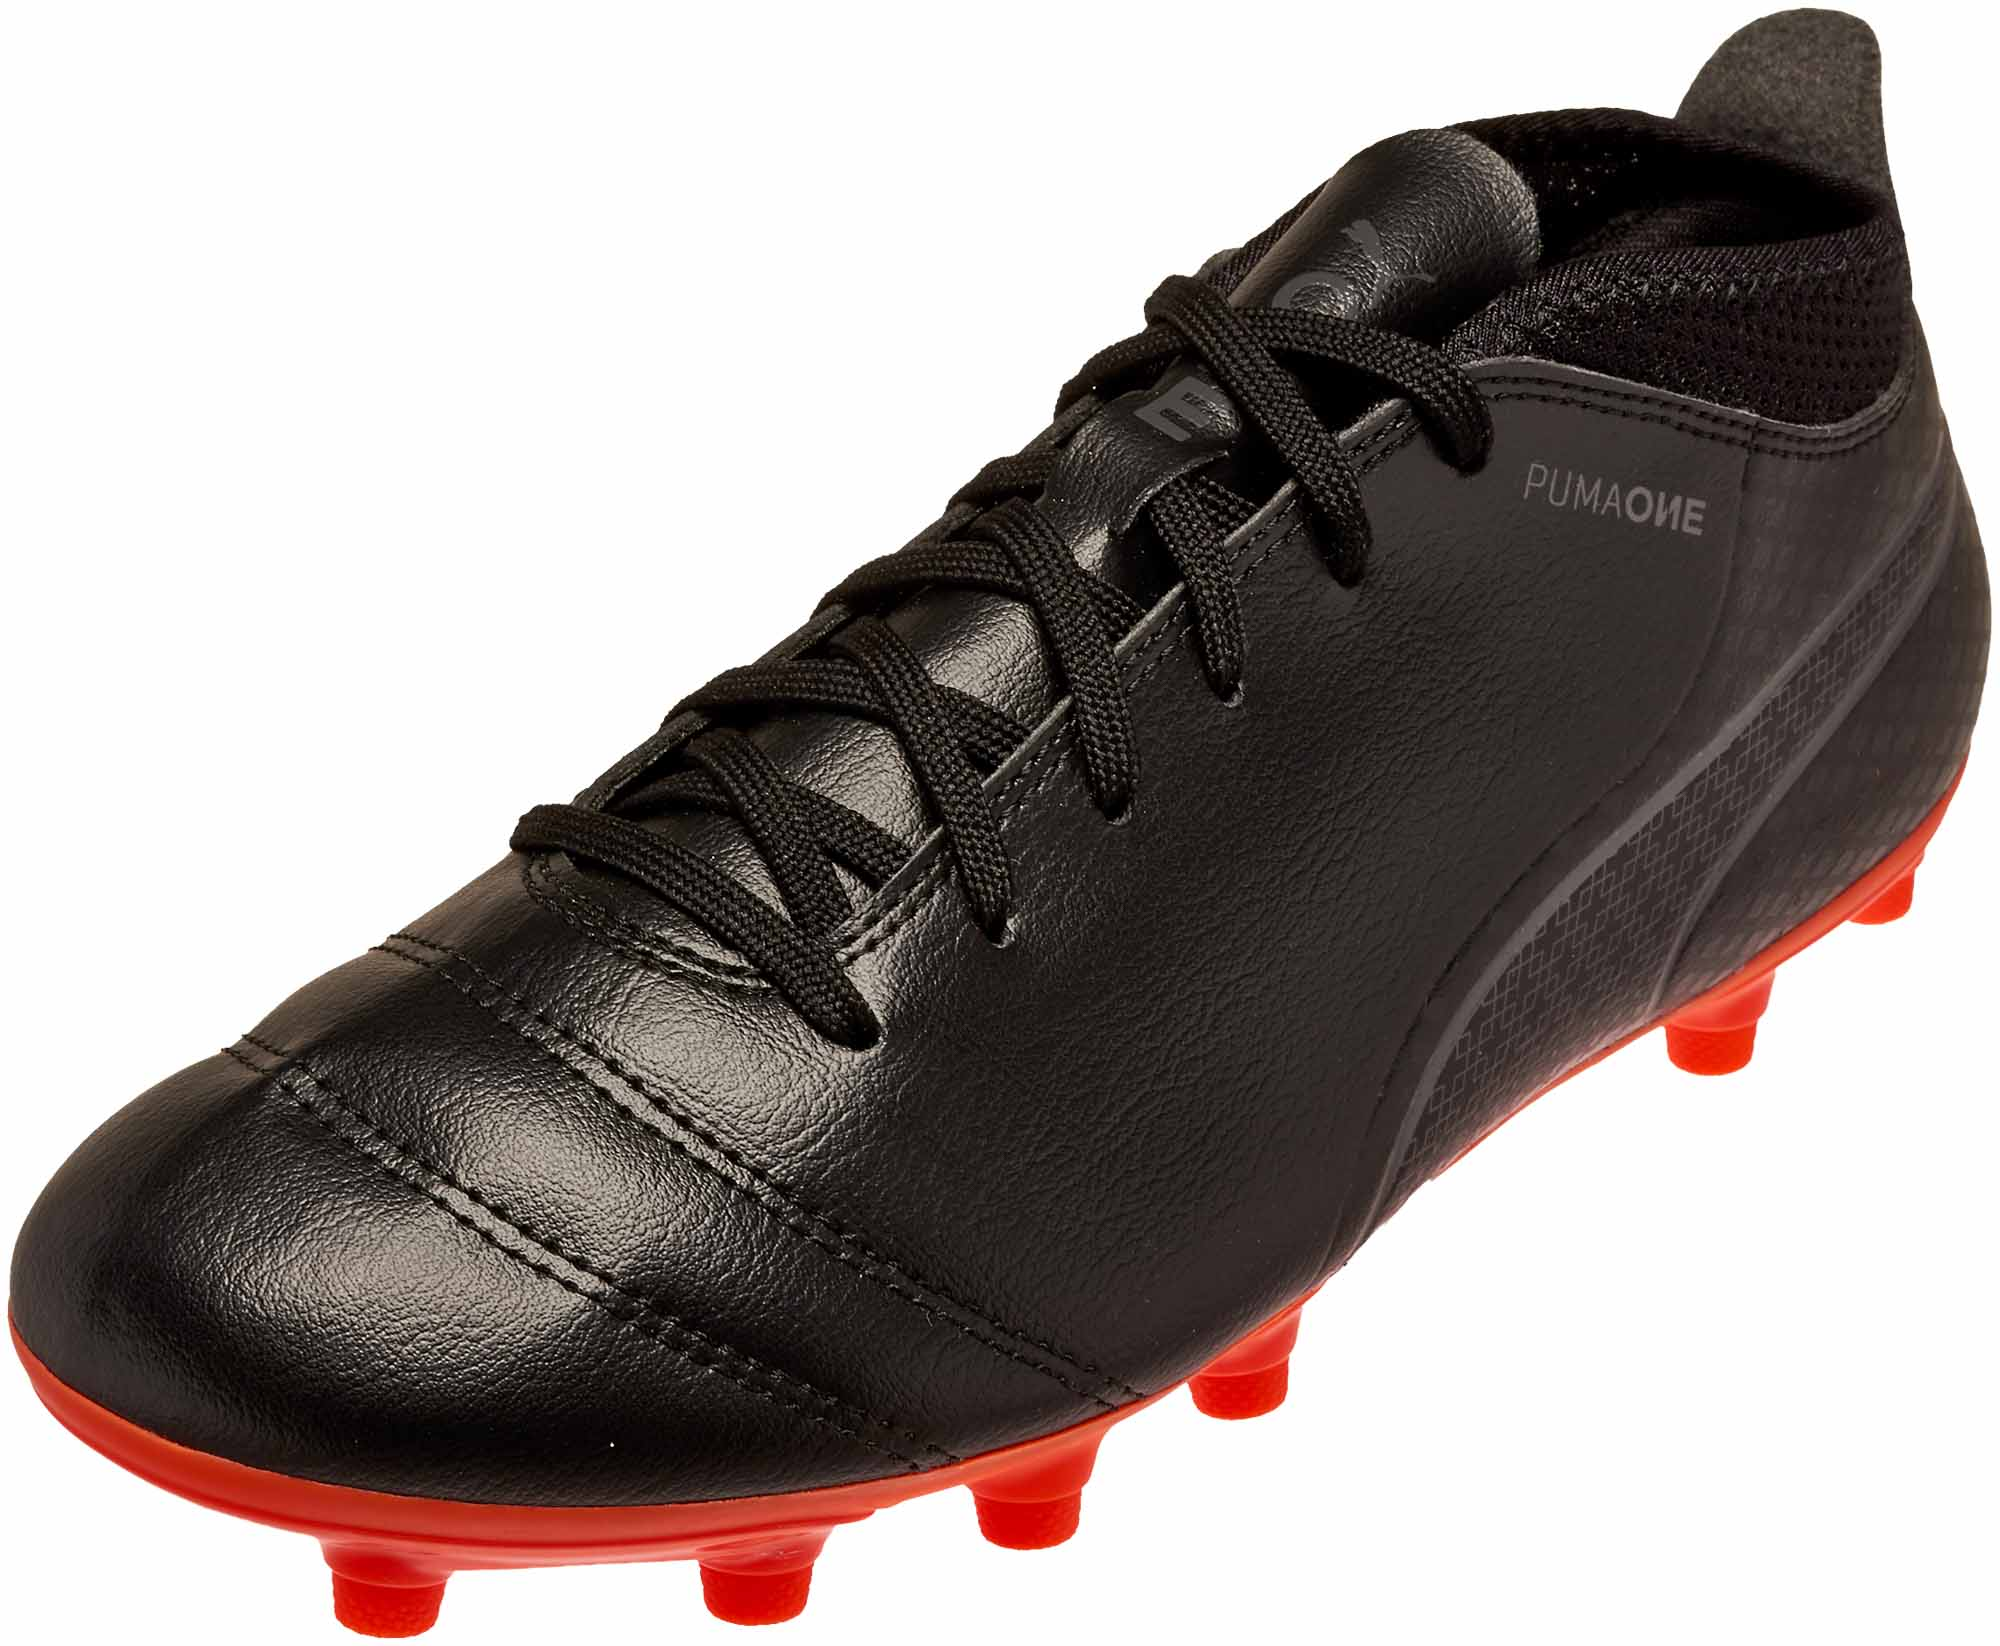 c1a4686052 PUMA One 17.4 FG – Black/Shocking Orange